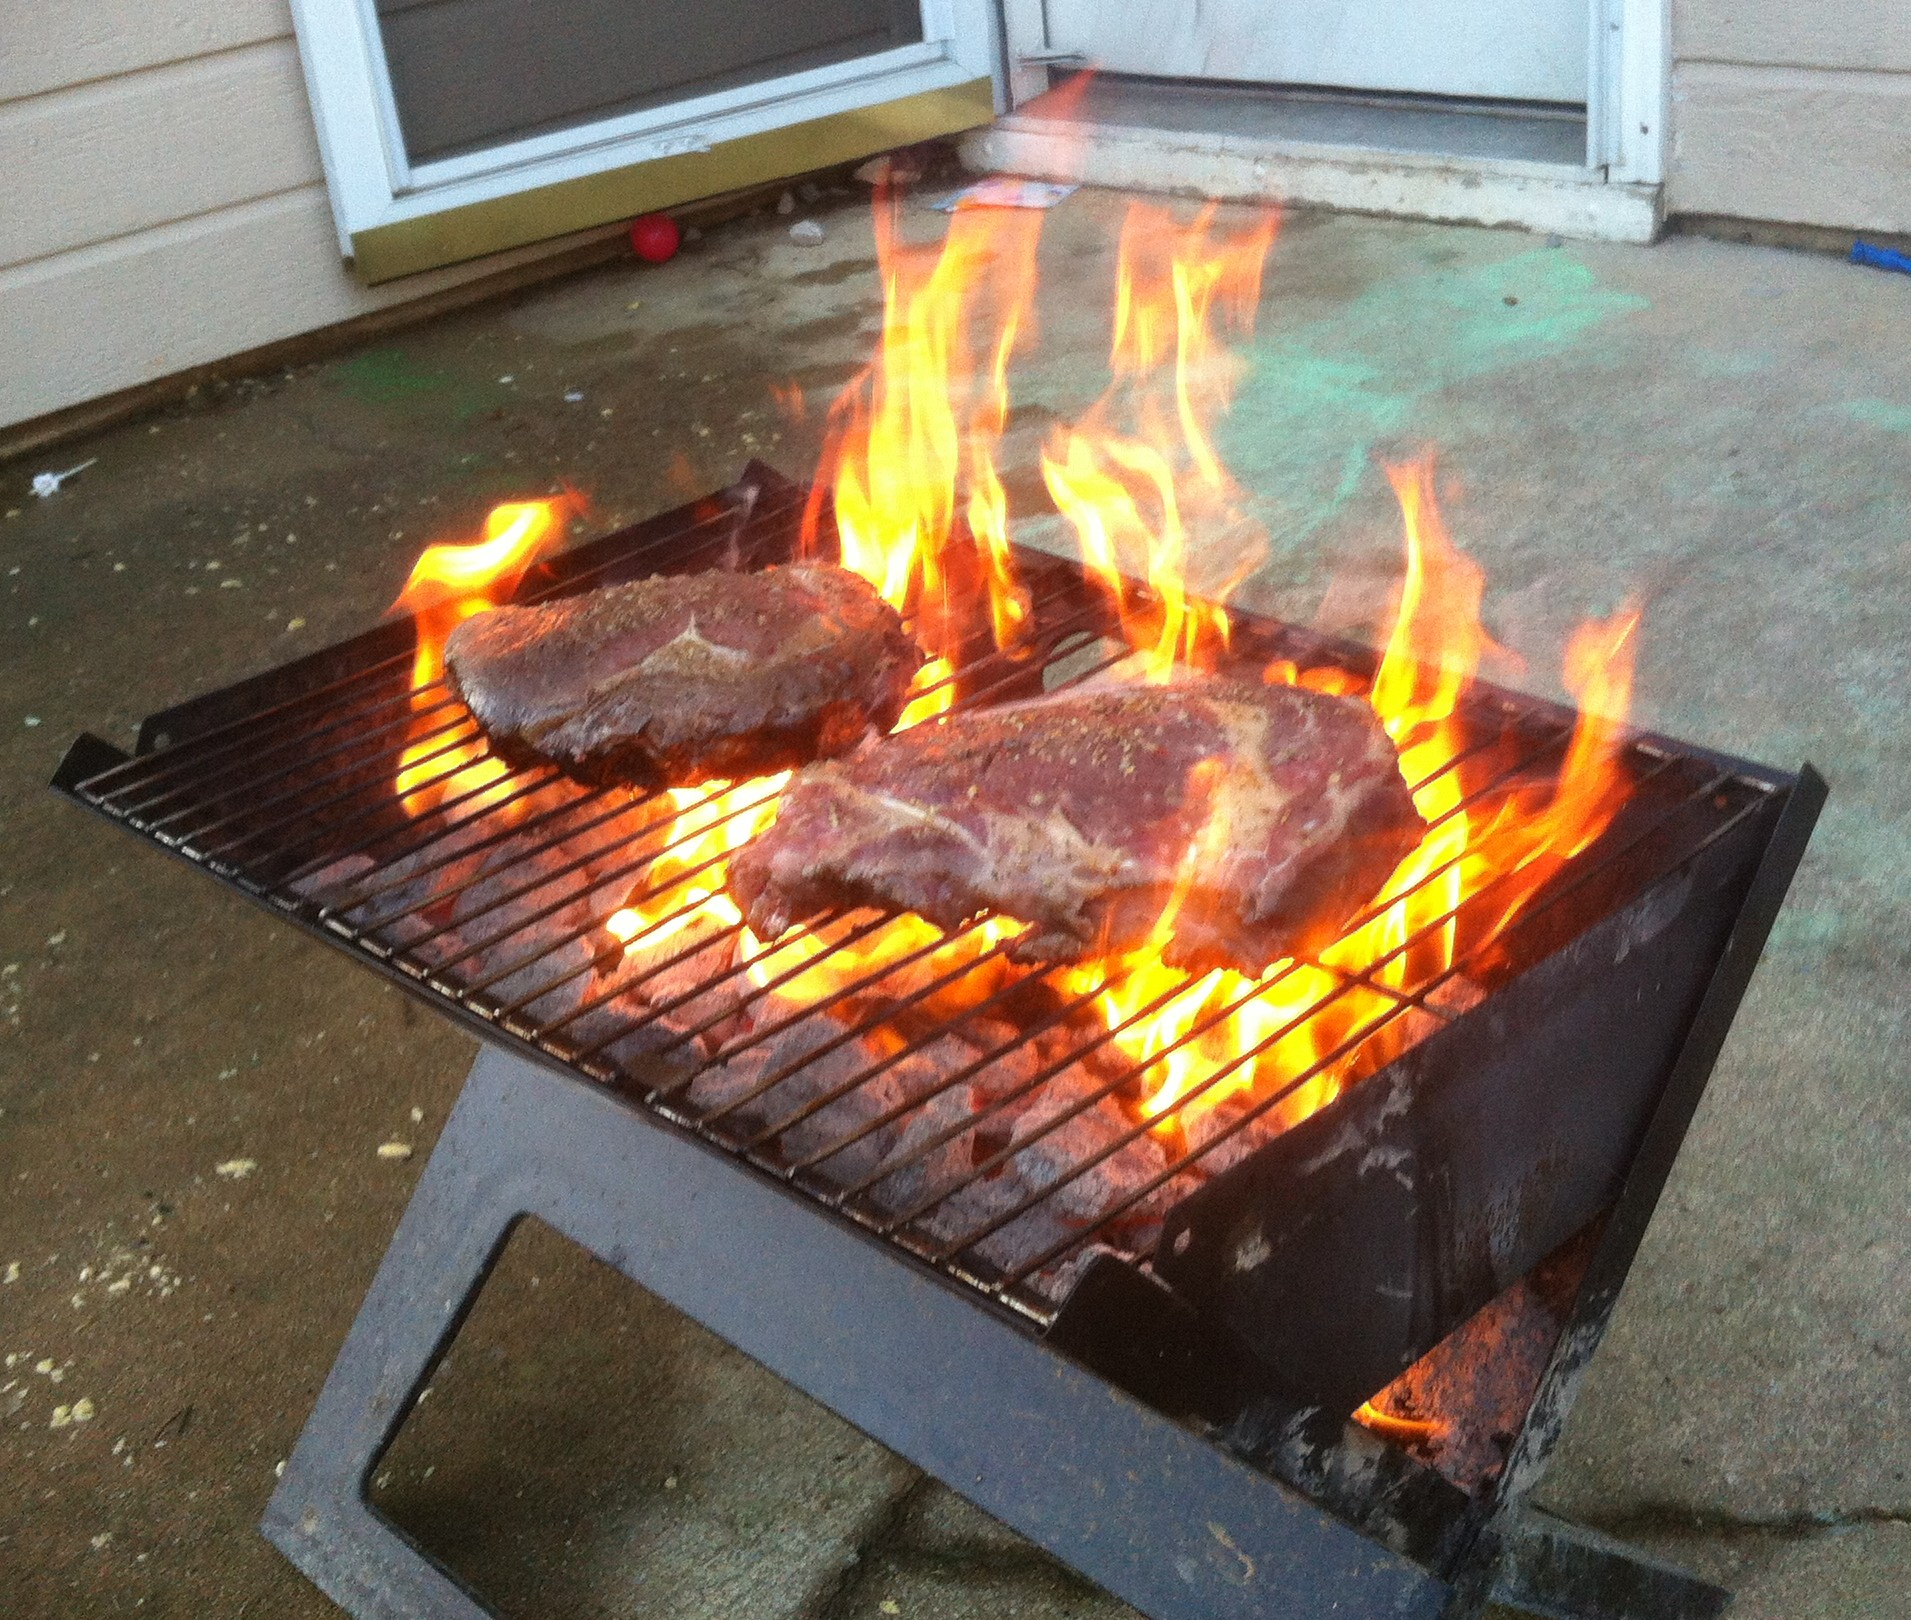 Date Night: A Key Ingredient to a Happy Marriage - Steaks for Two